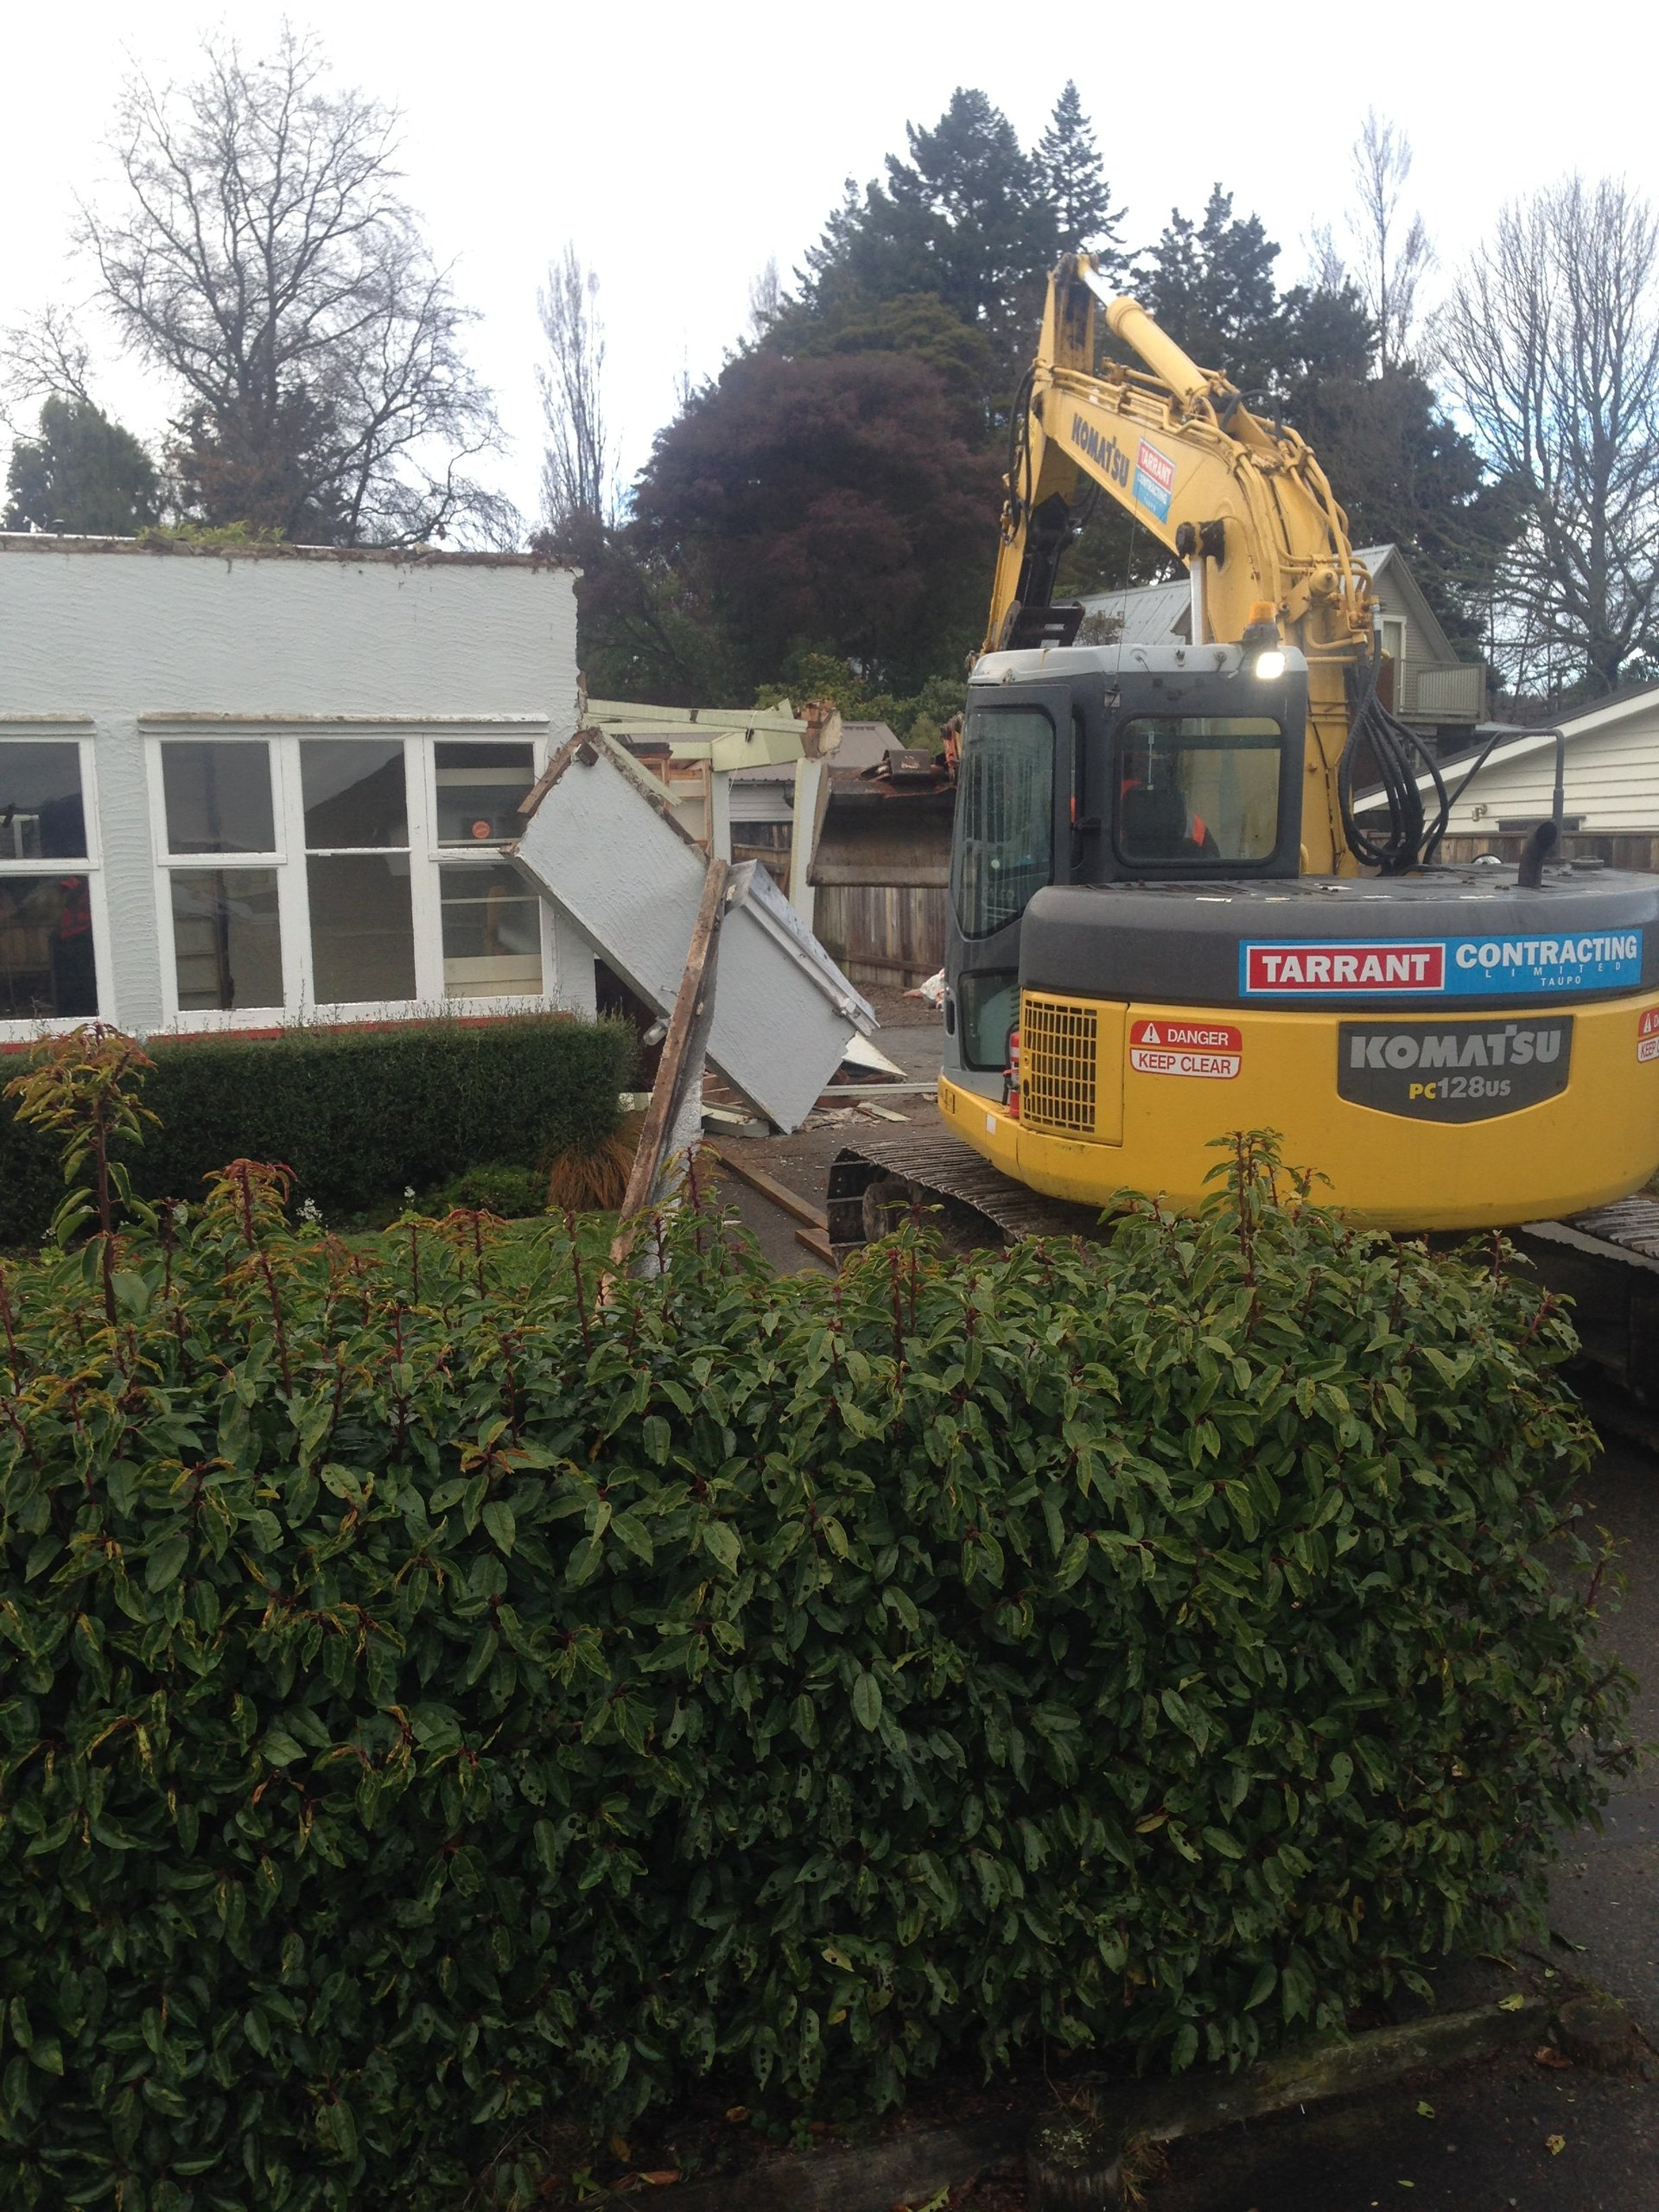 Machine available for excavator hire in Taupo